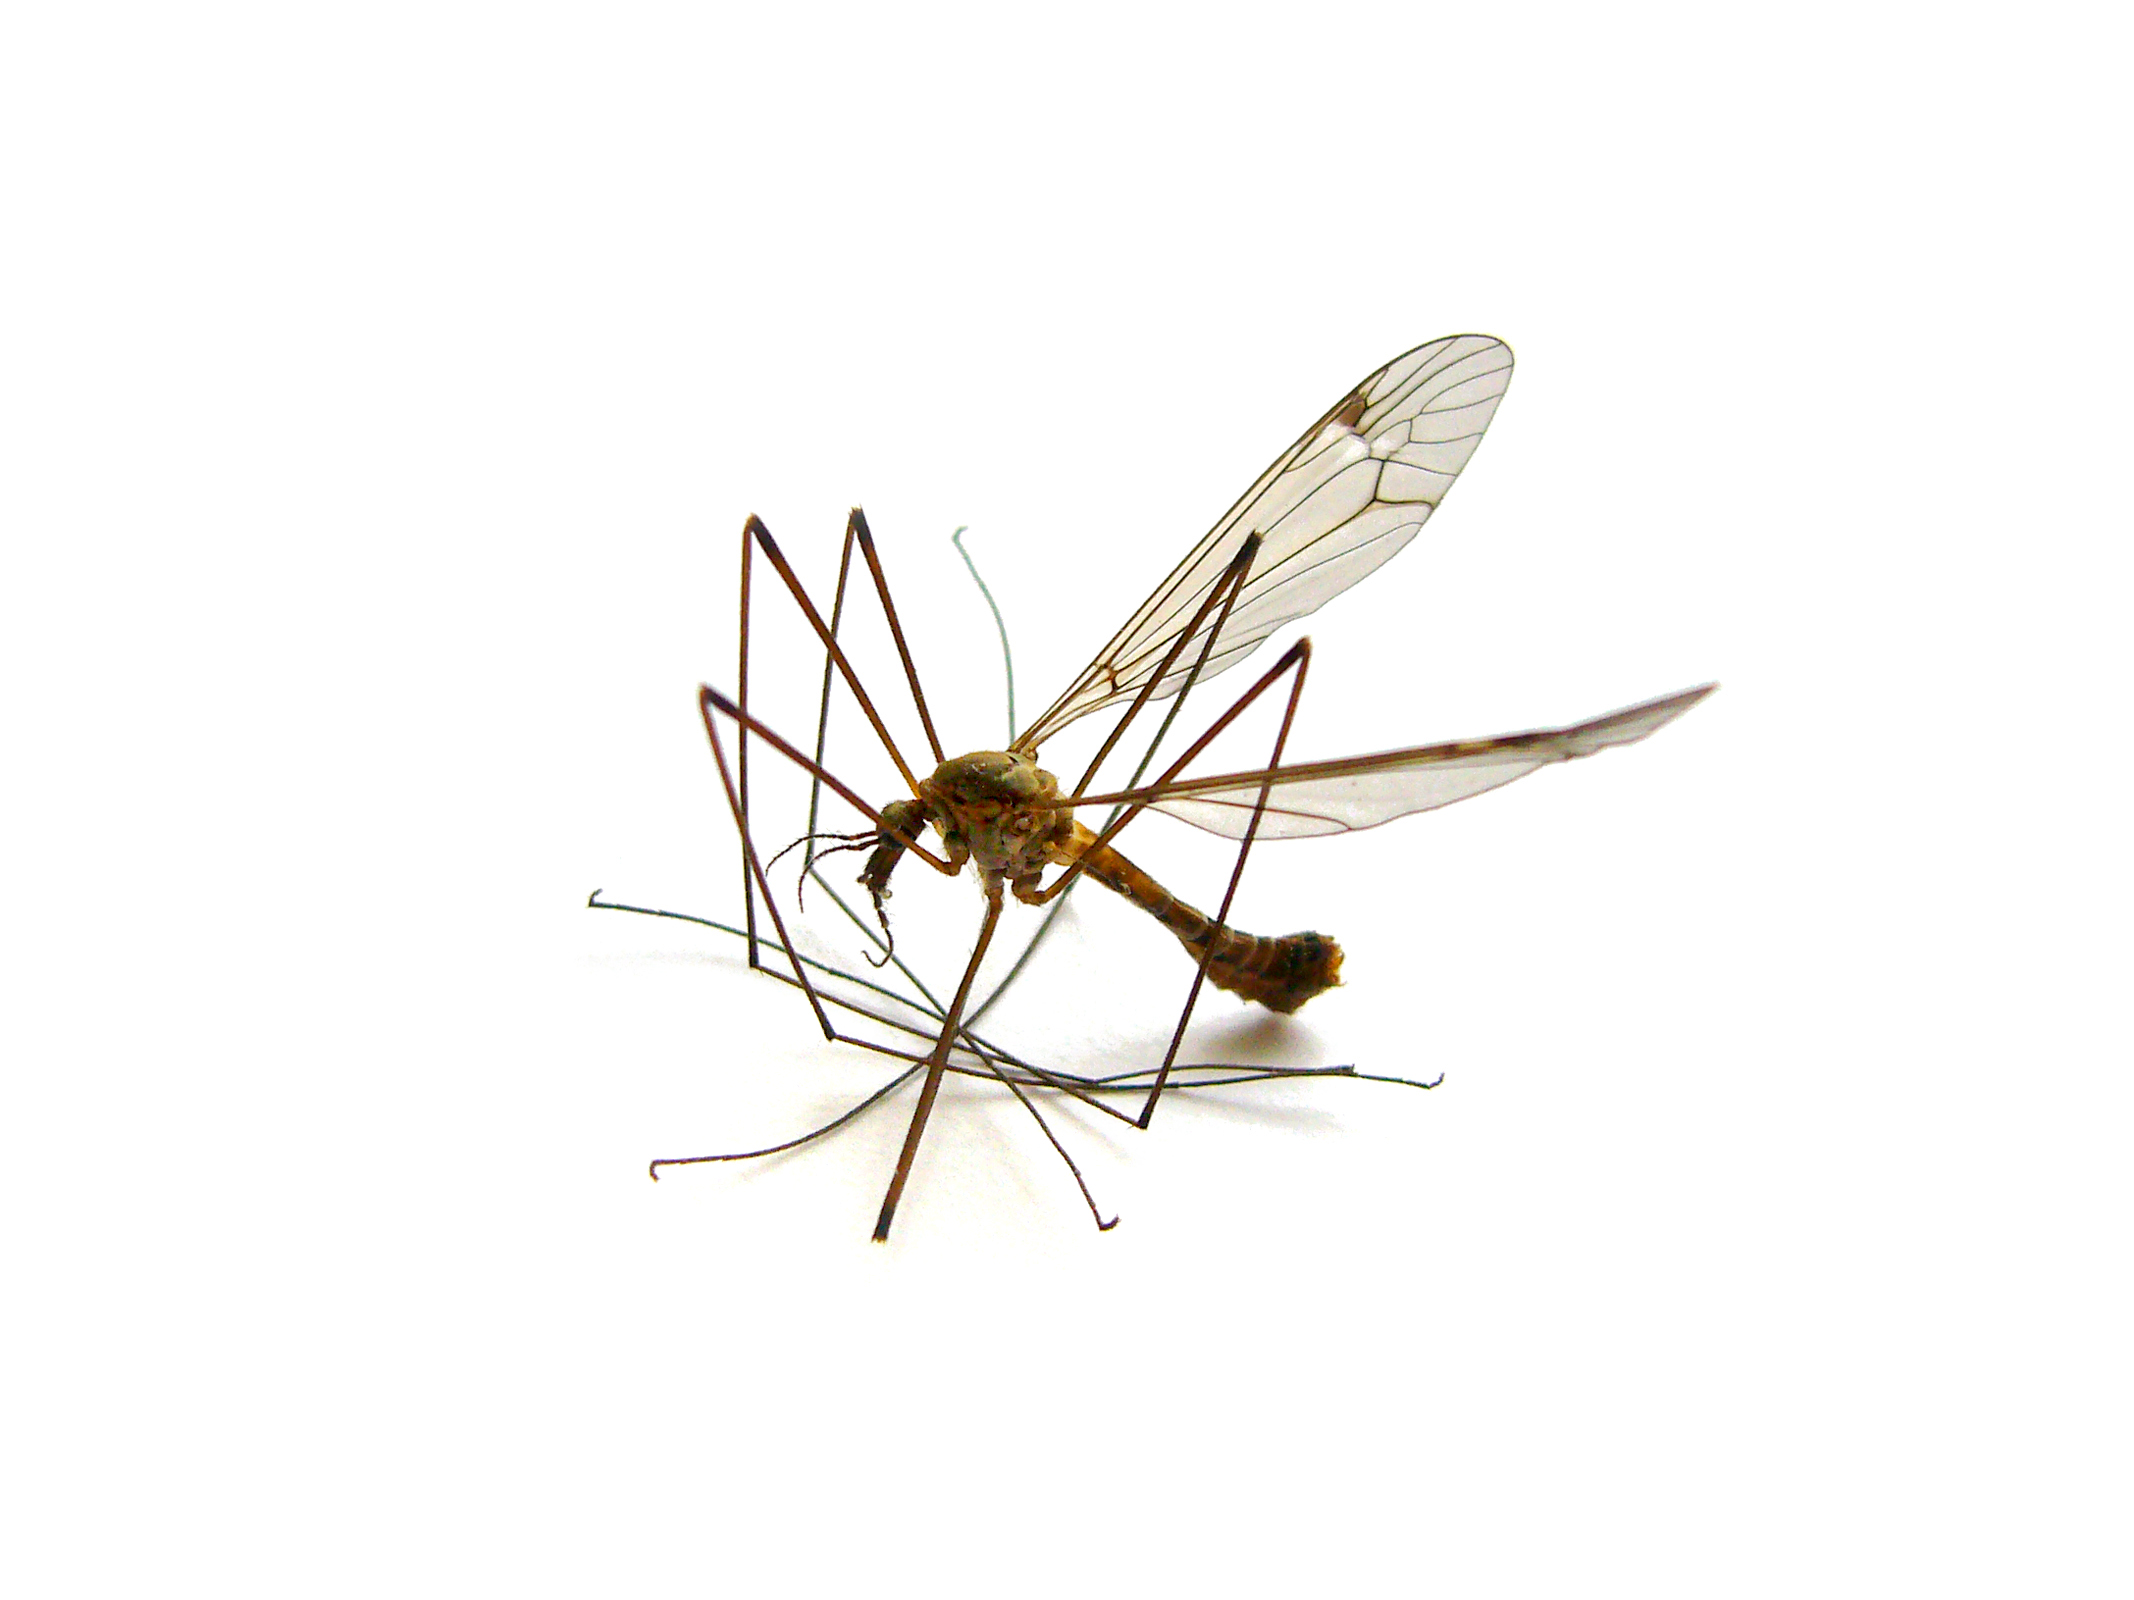 Mosquito control products and supplies